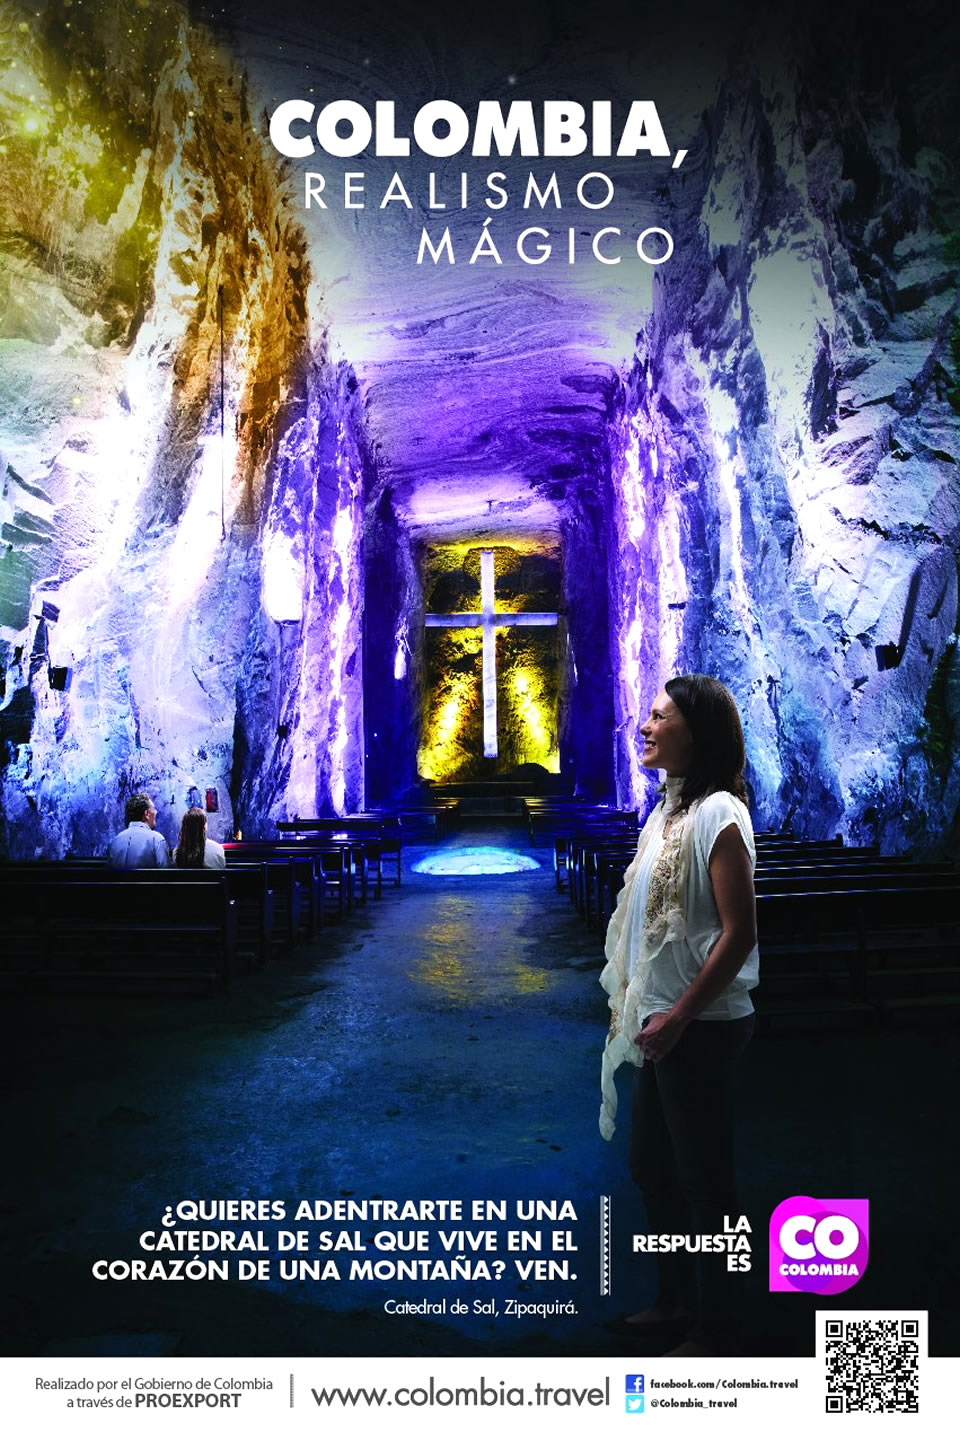 Catedral de Sal Tourism Advertisement Poster of Colombia Magical Realism